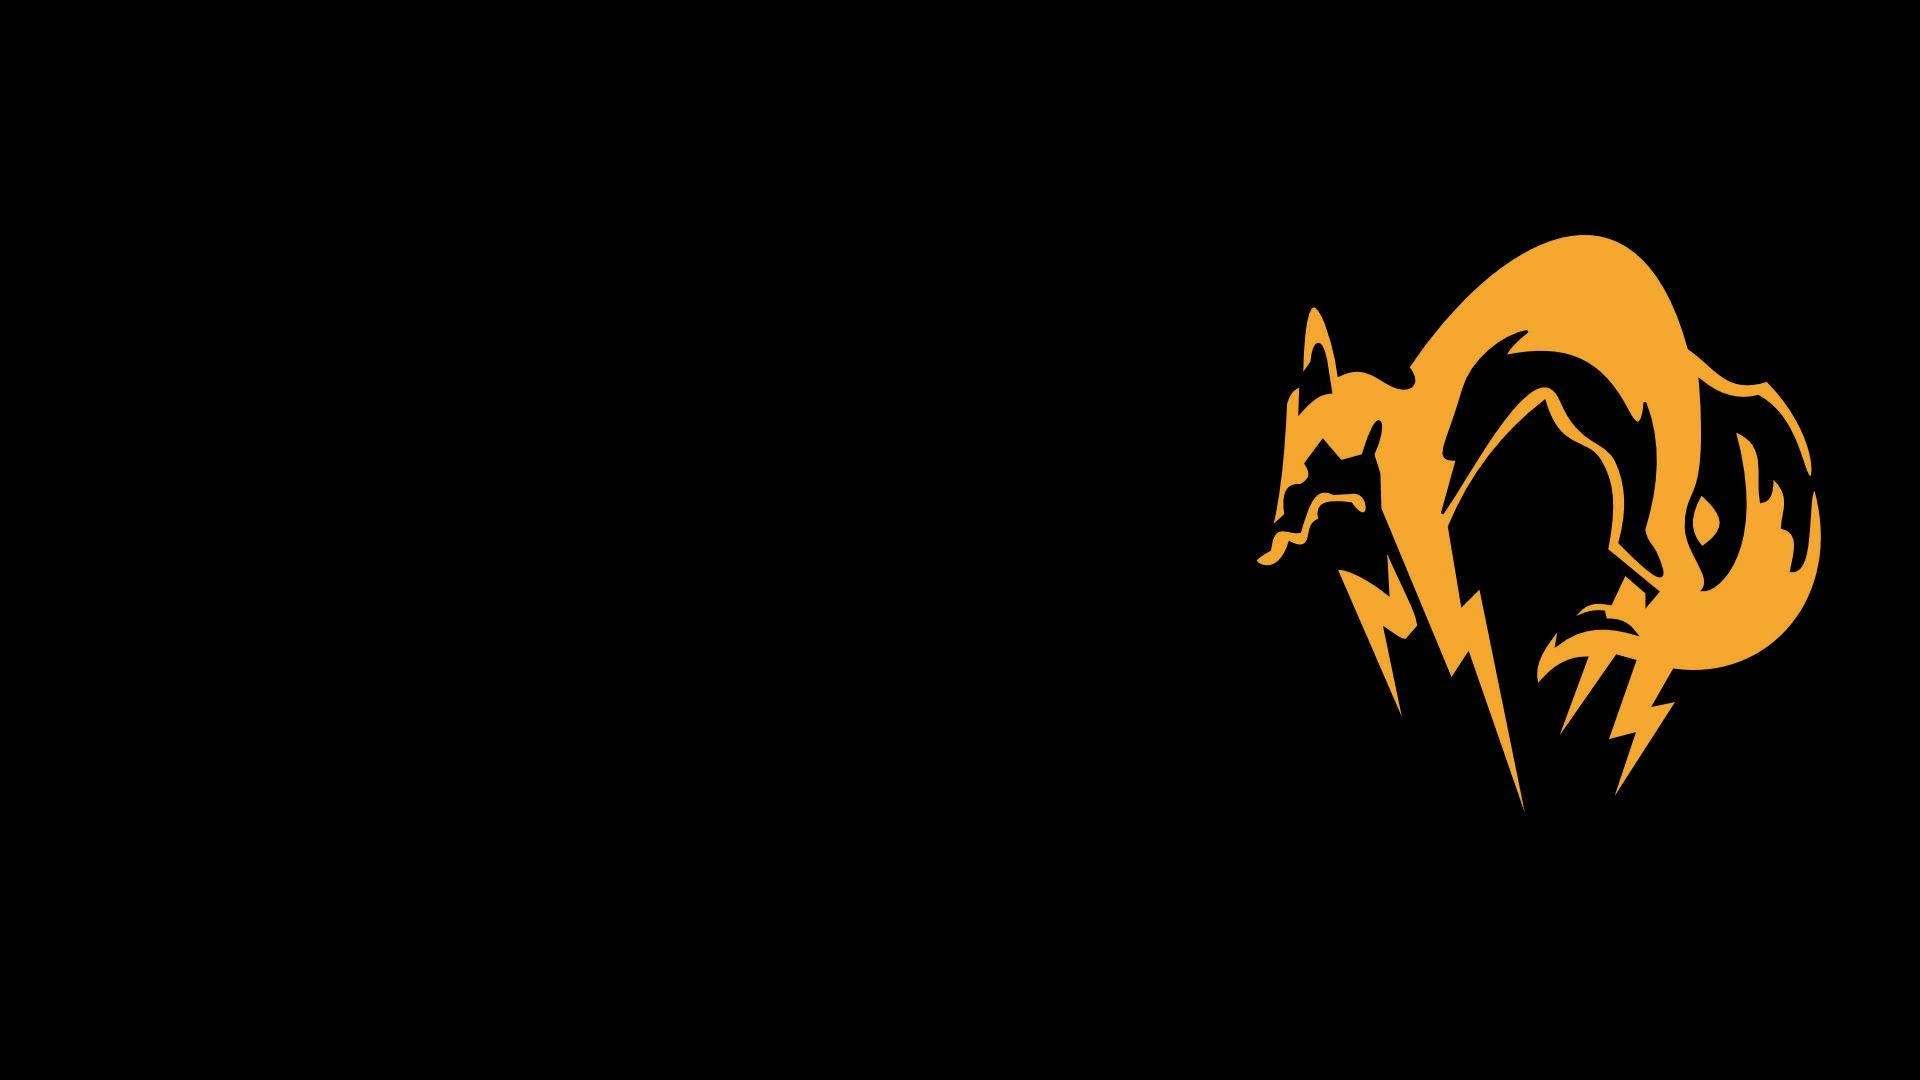 1920x1080 6. metal gear solid wallpaper6